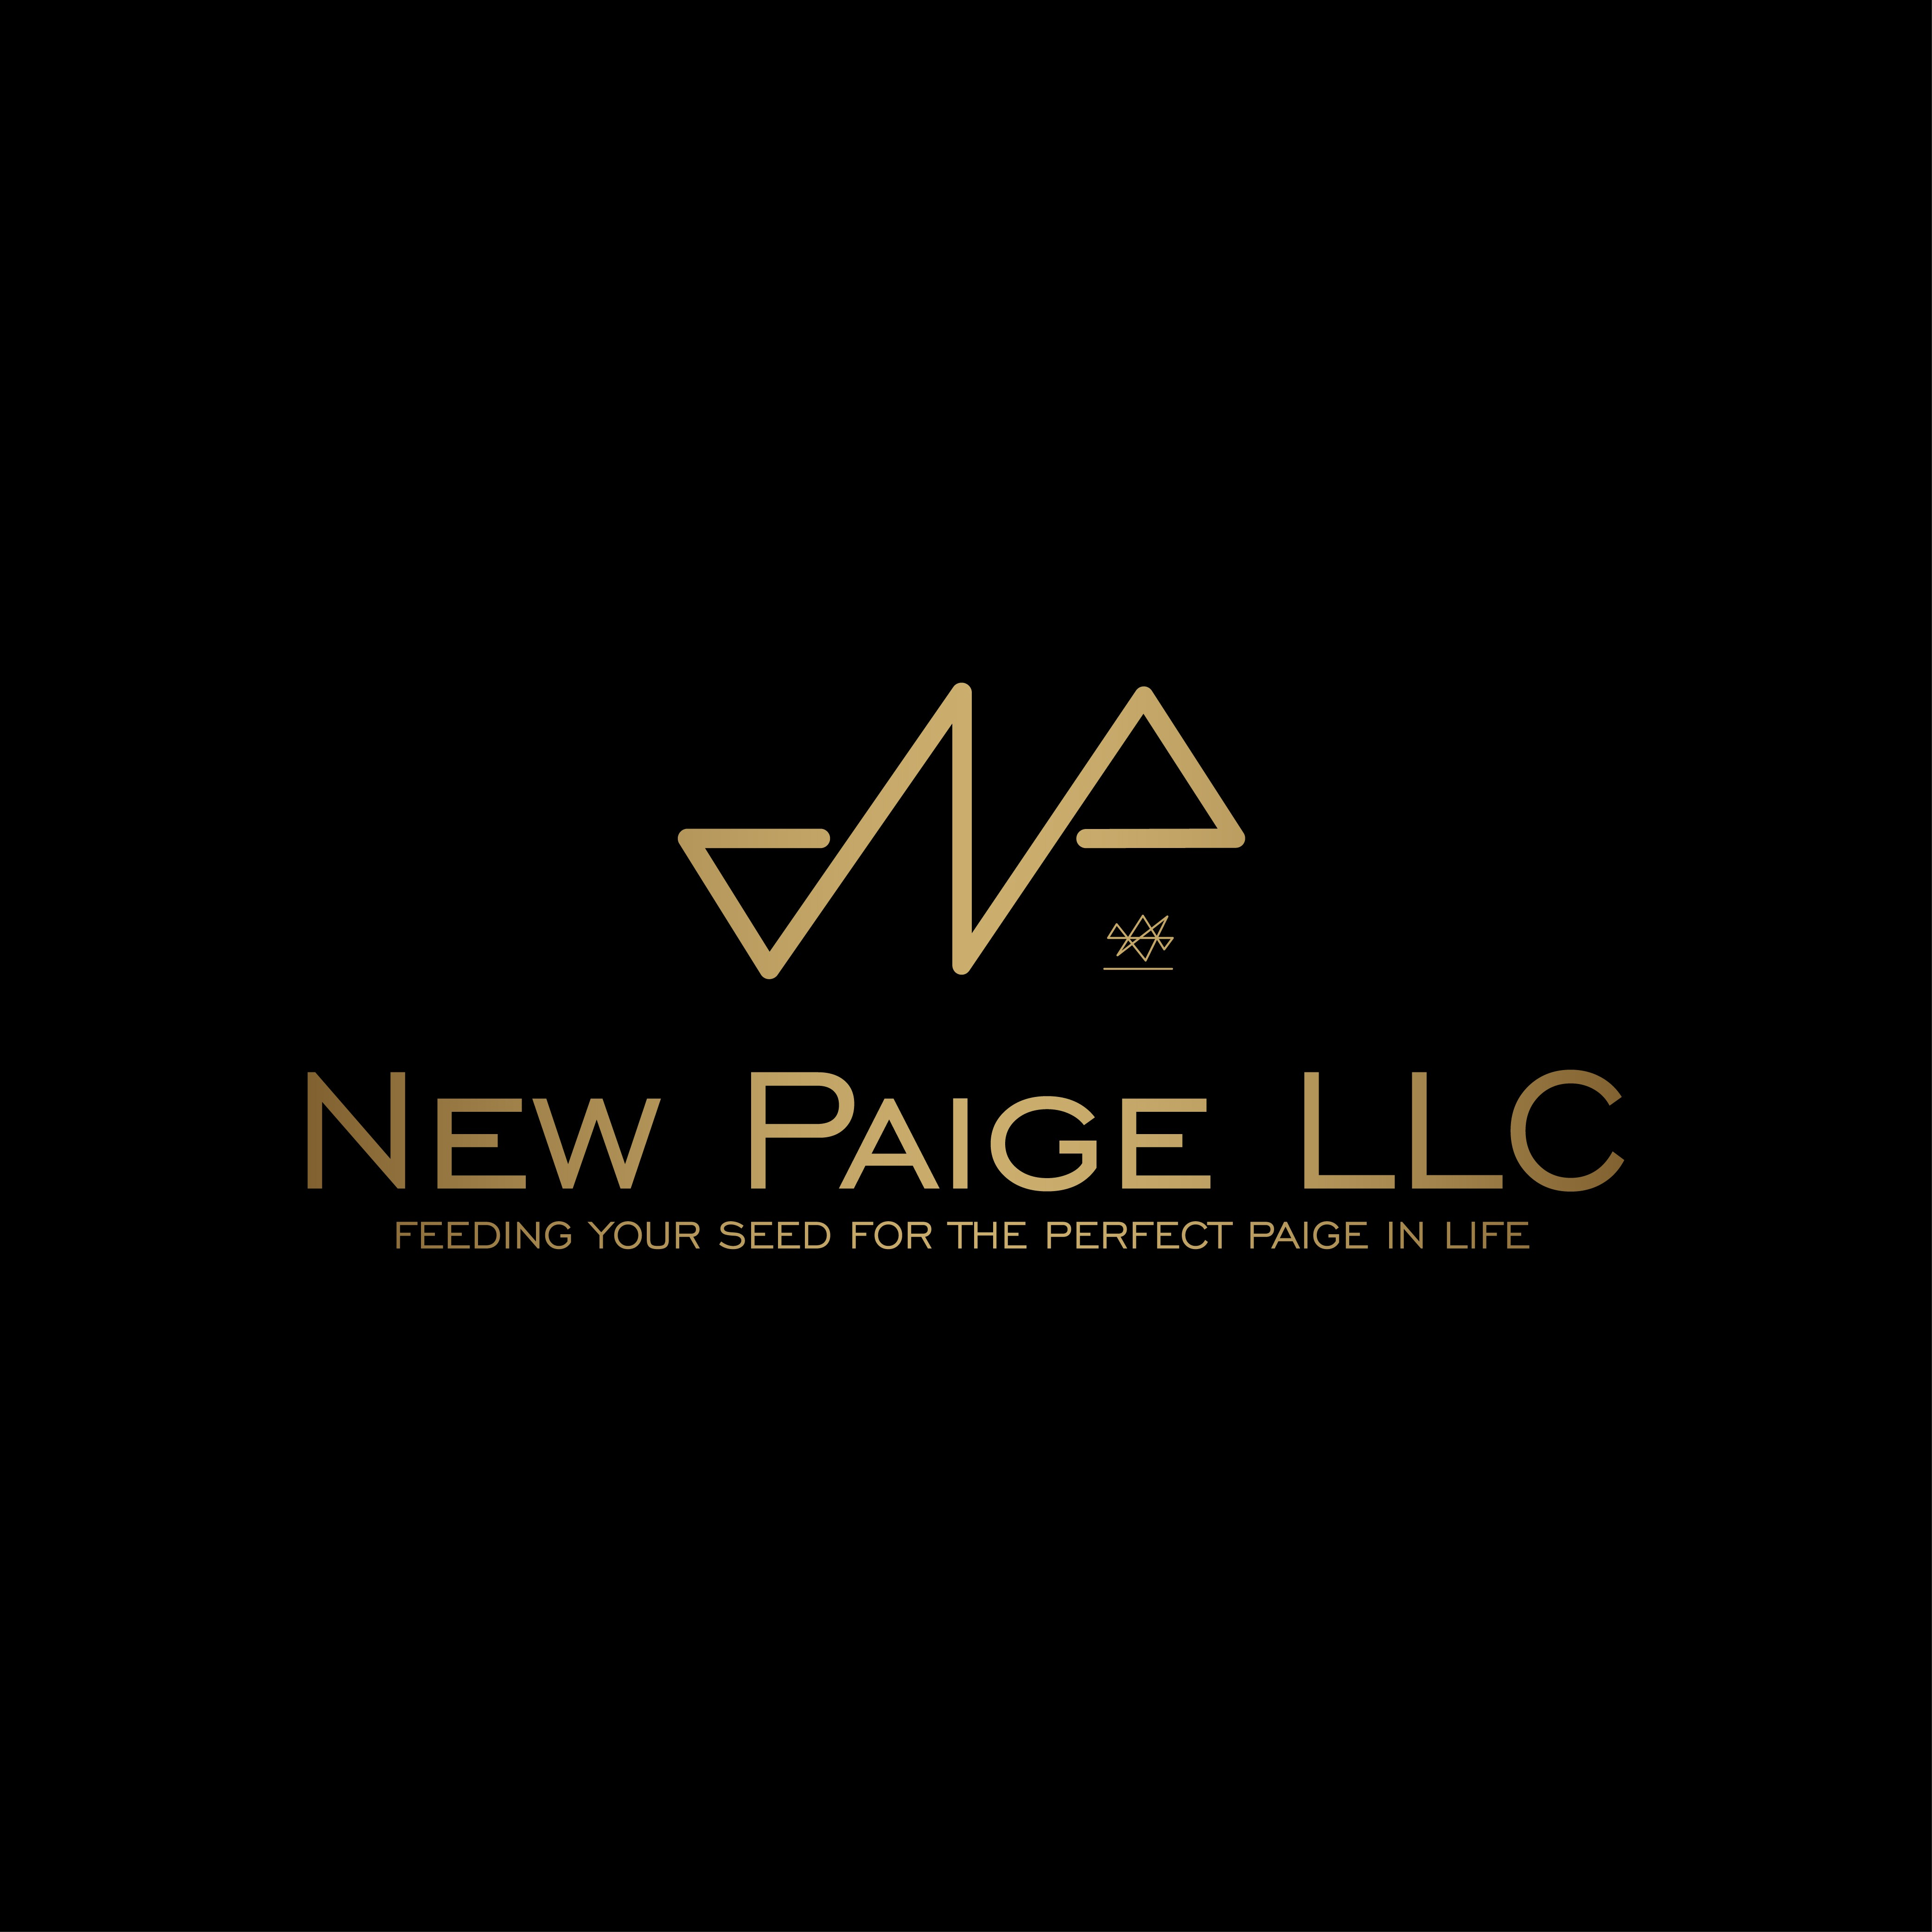 Real Estate Company looking for a Creative luxury logo design